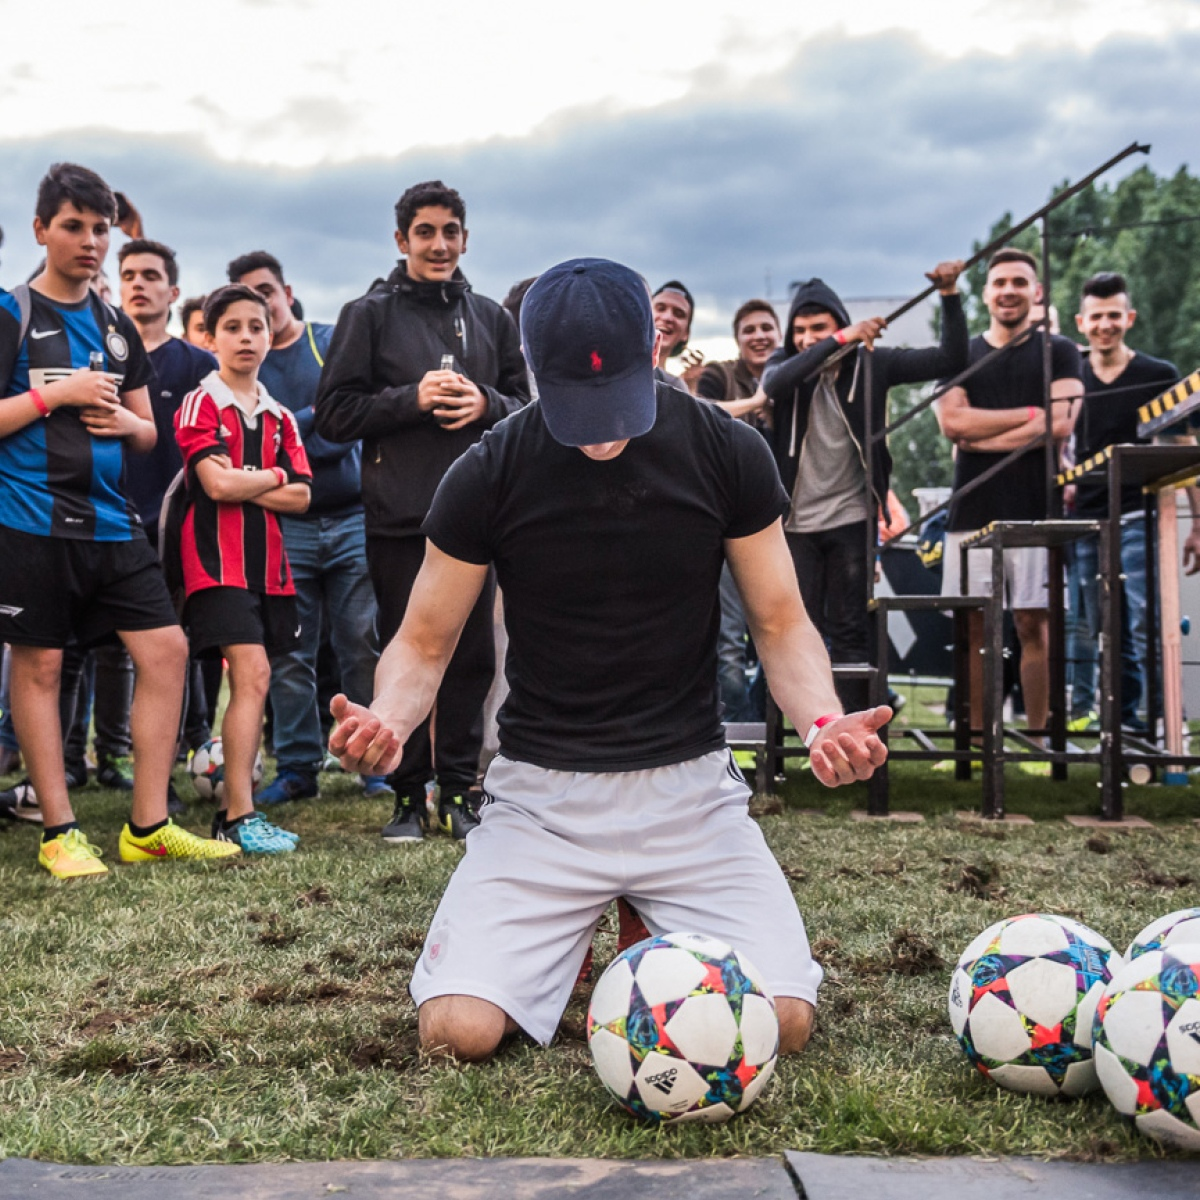 adidas: Launch-Event zur Kampagne #BeTheDifference